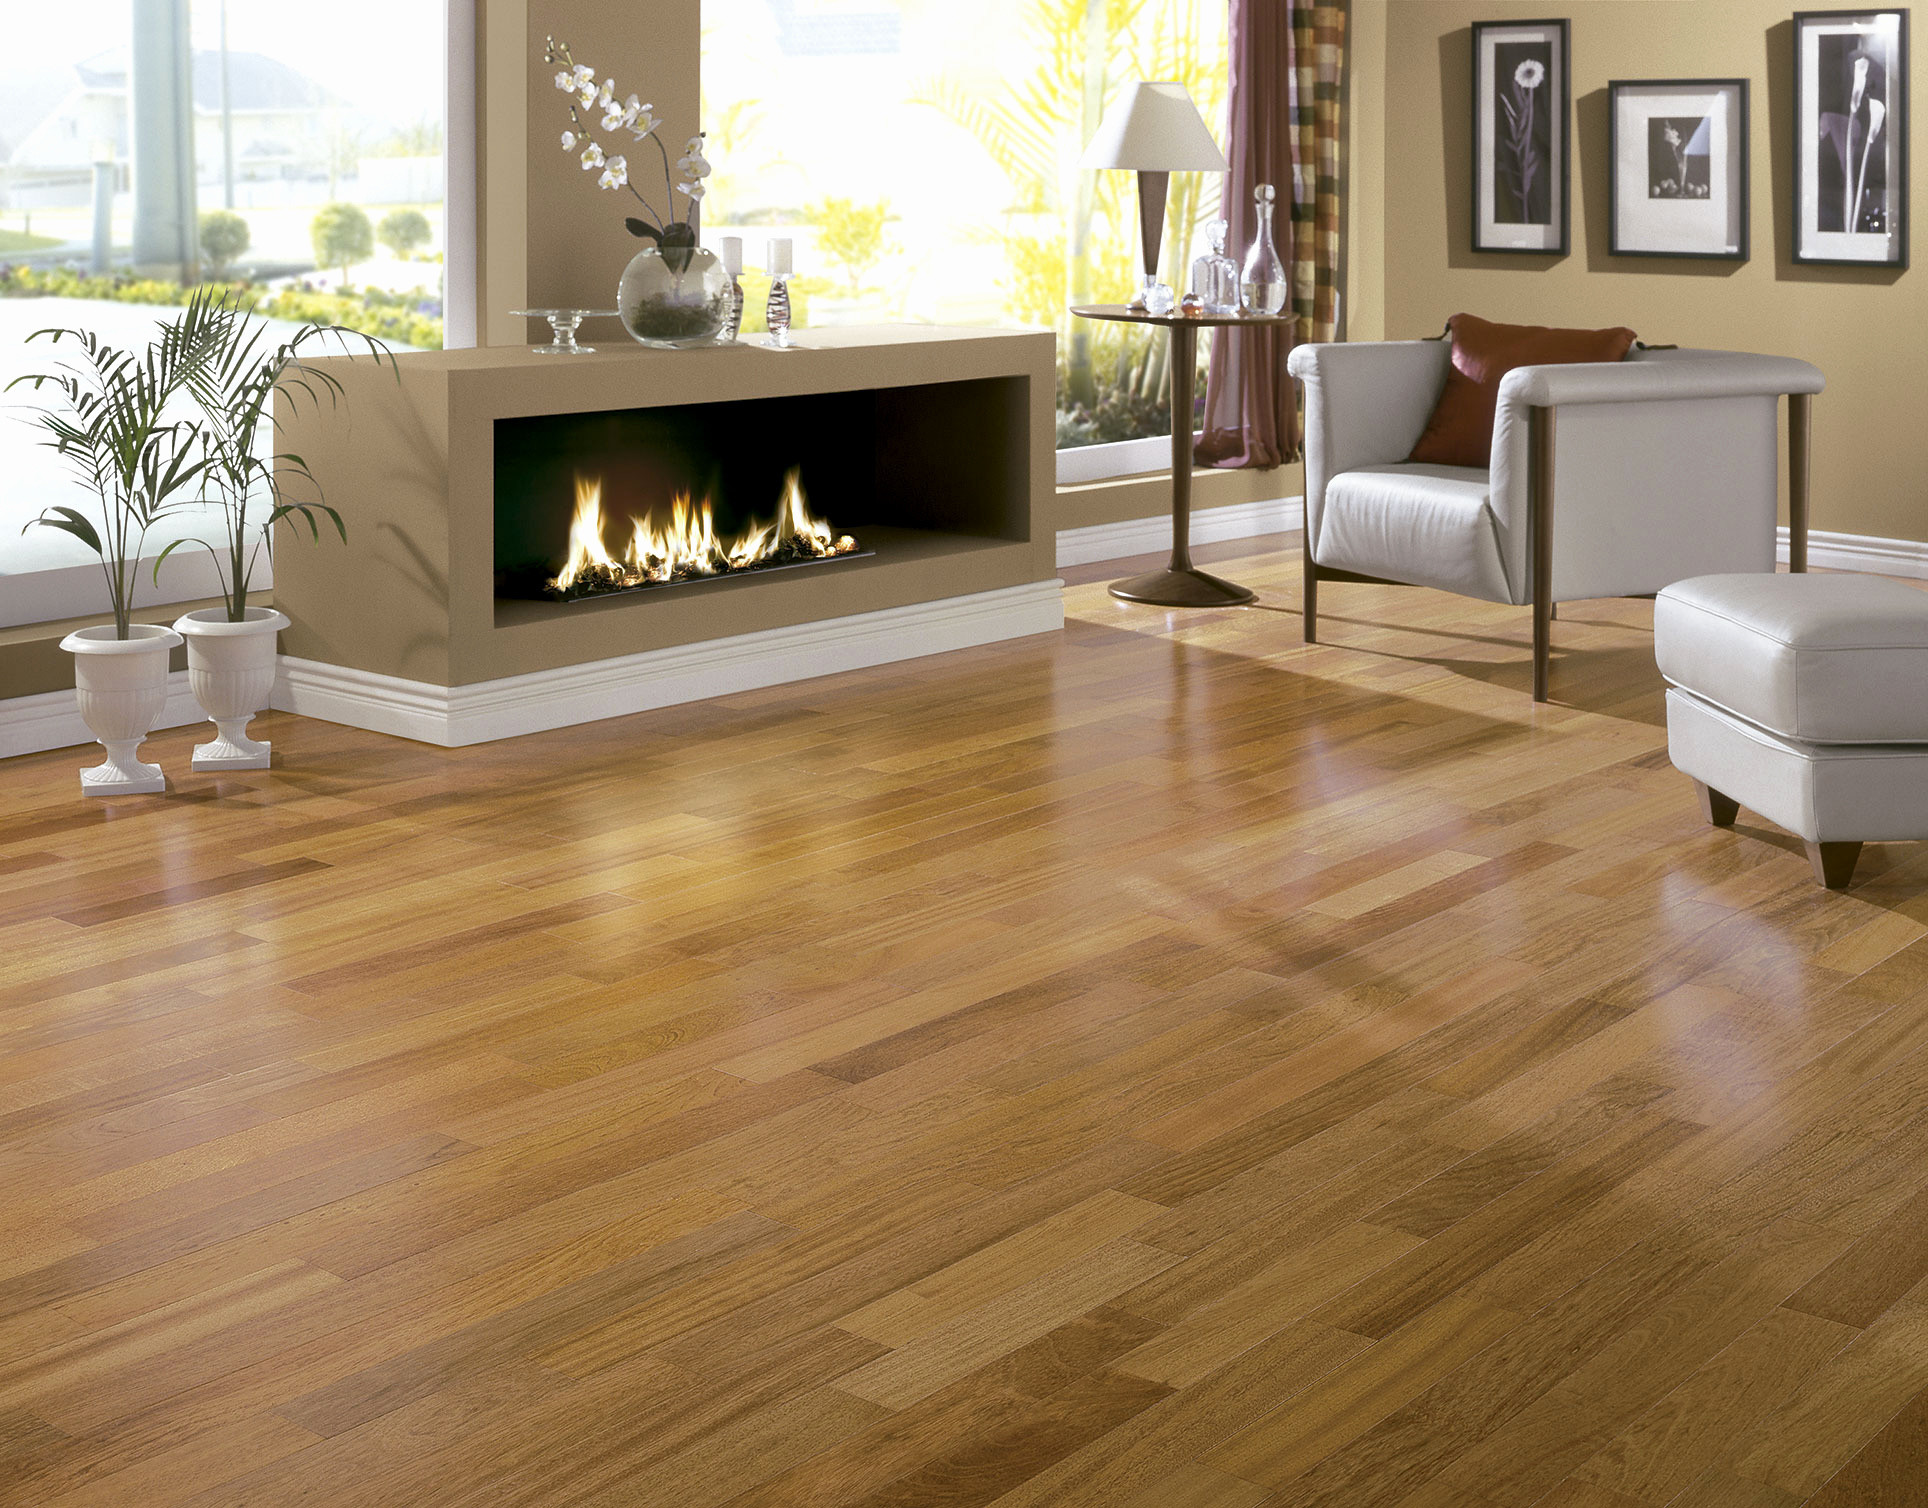 quality hardwood flooring of wlcu page 8 best home design ideas regarding 5 hardwood flooring best of engaging discount hardwood flooring 5 where to buy inspirational 0d